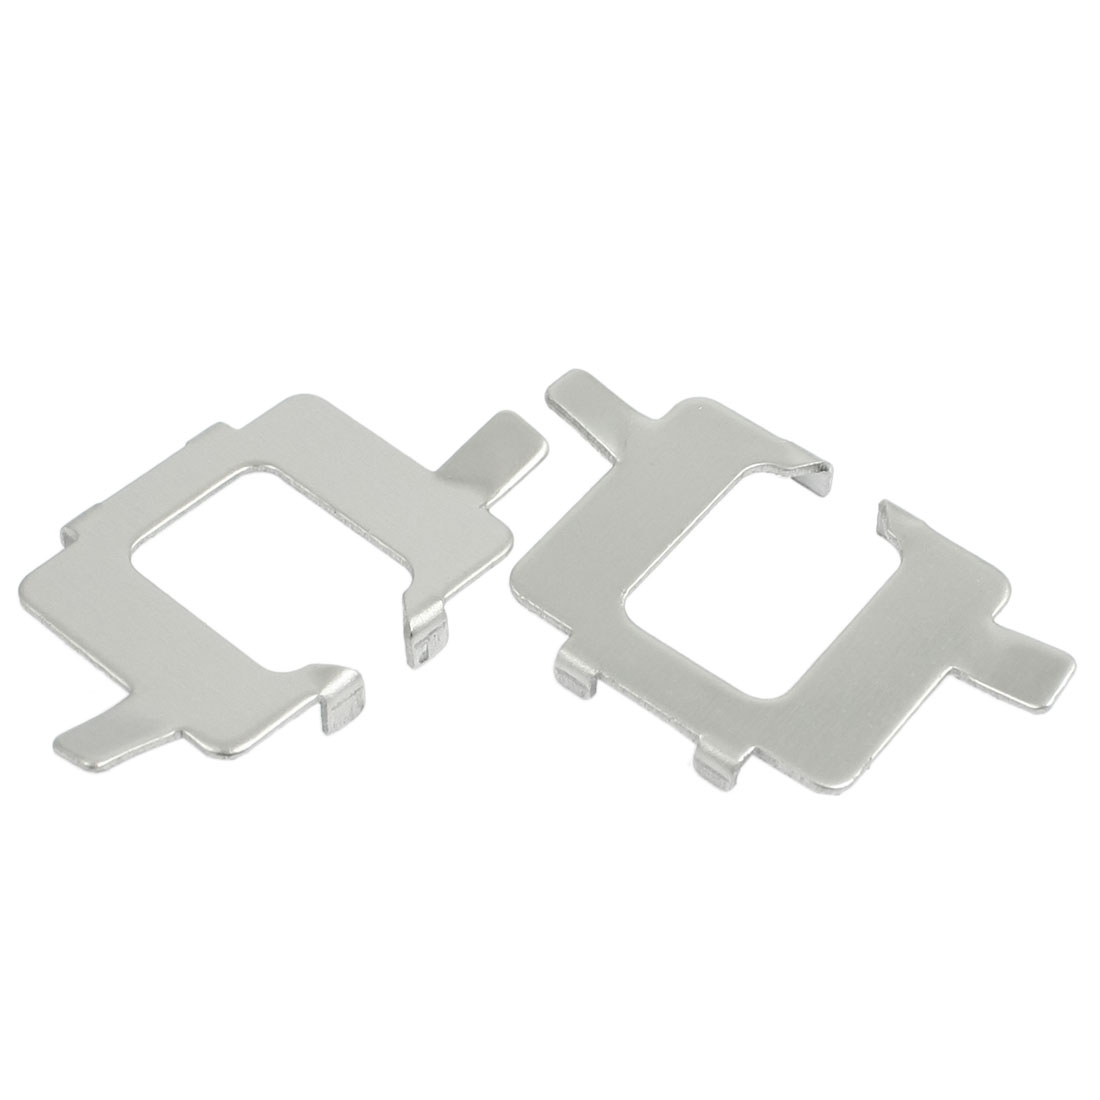 2 Pcs Xenon HID Bulb Kit Holders Retainers Adapters for BMW 5 Series